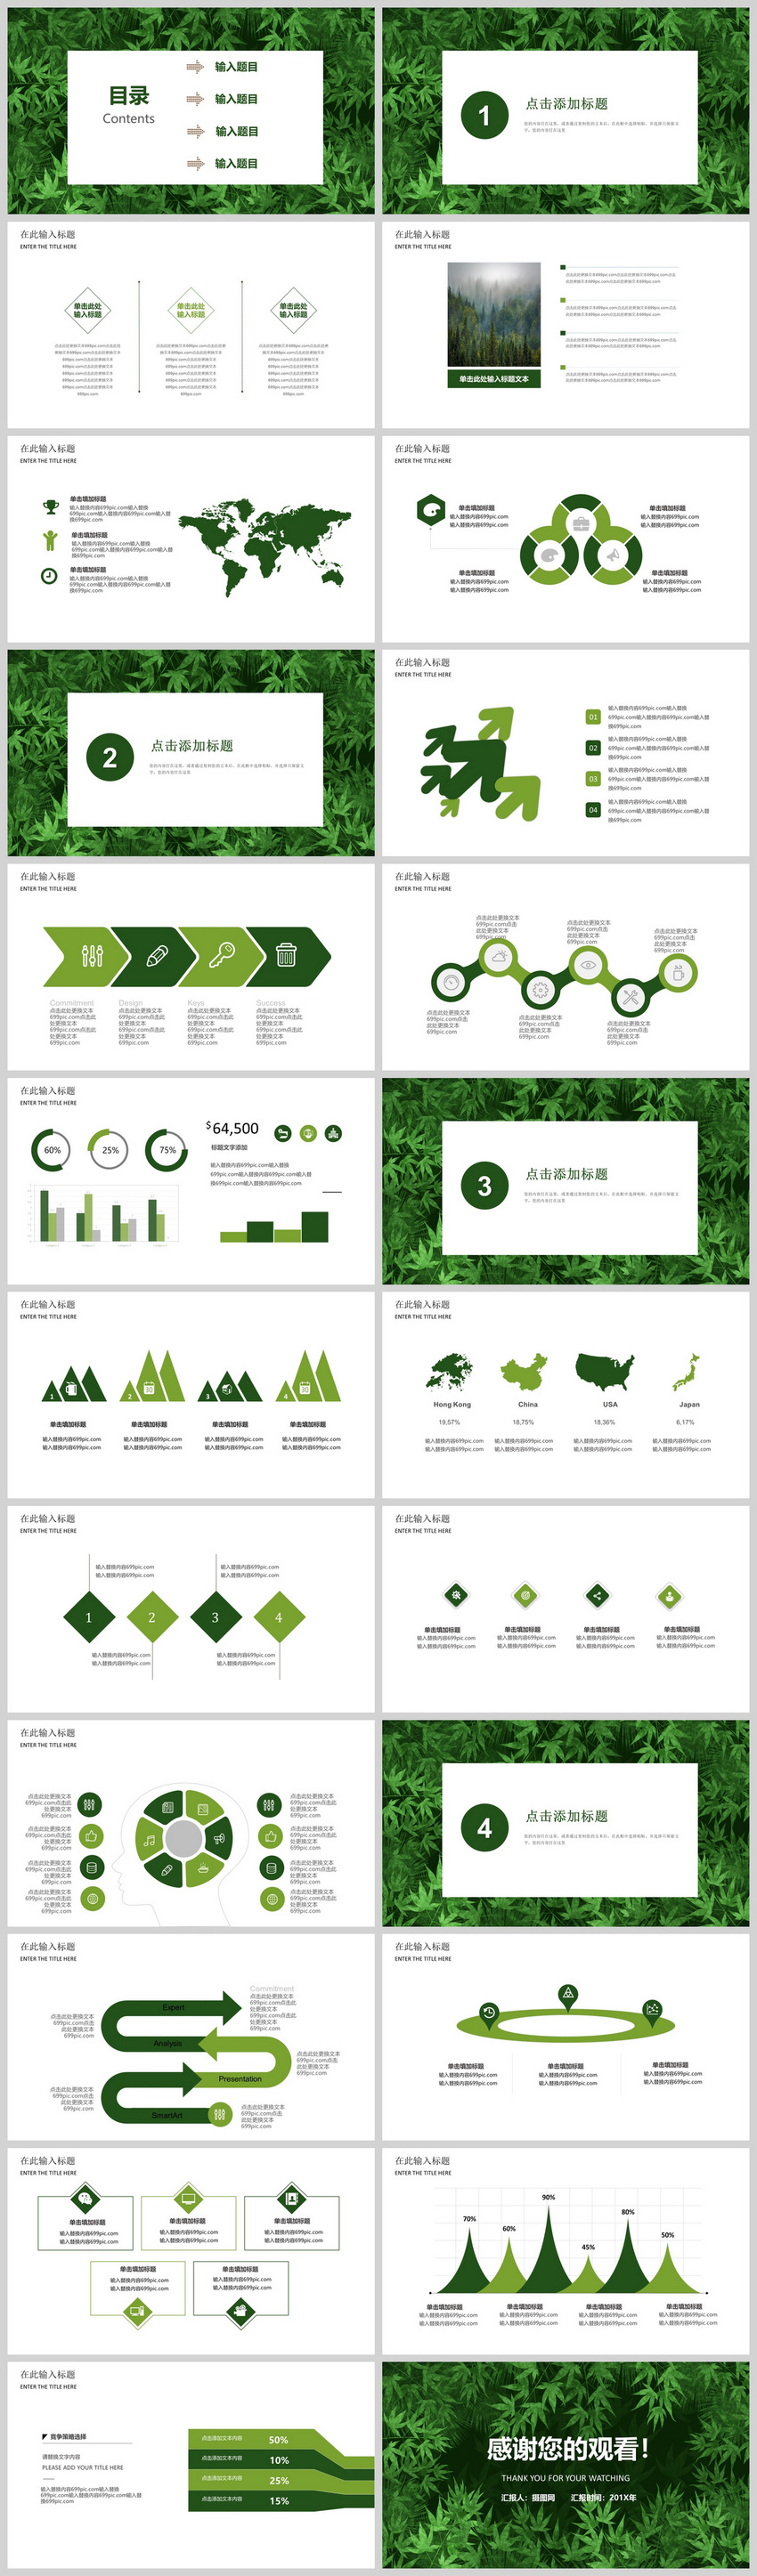 Green background environmental protection energy ppt